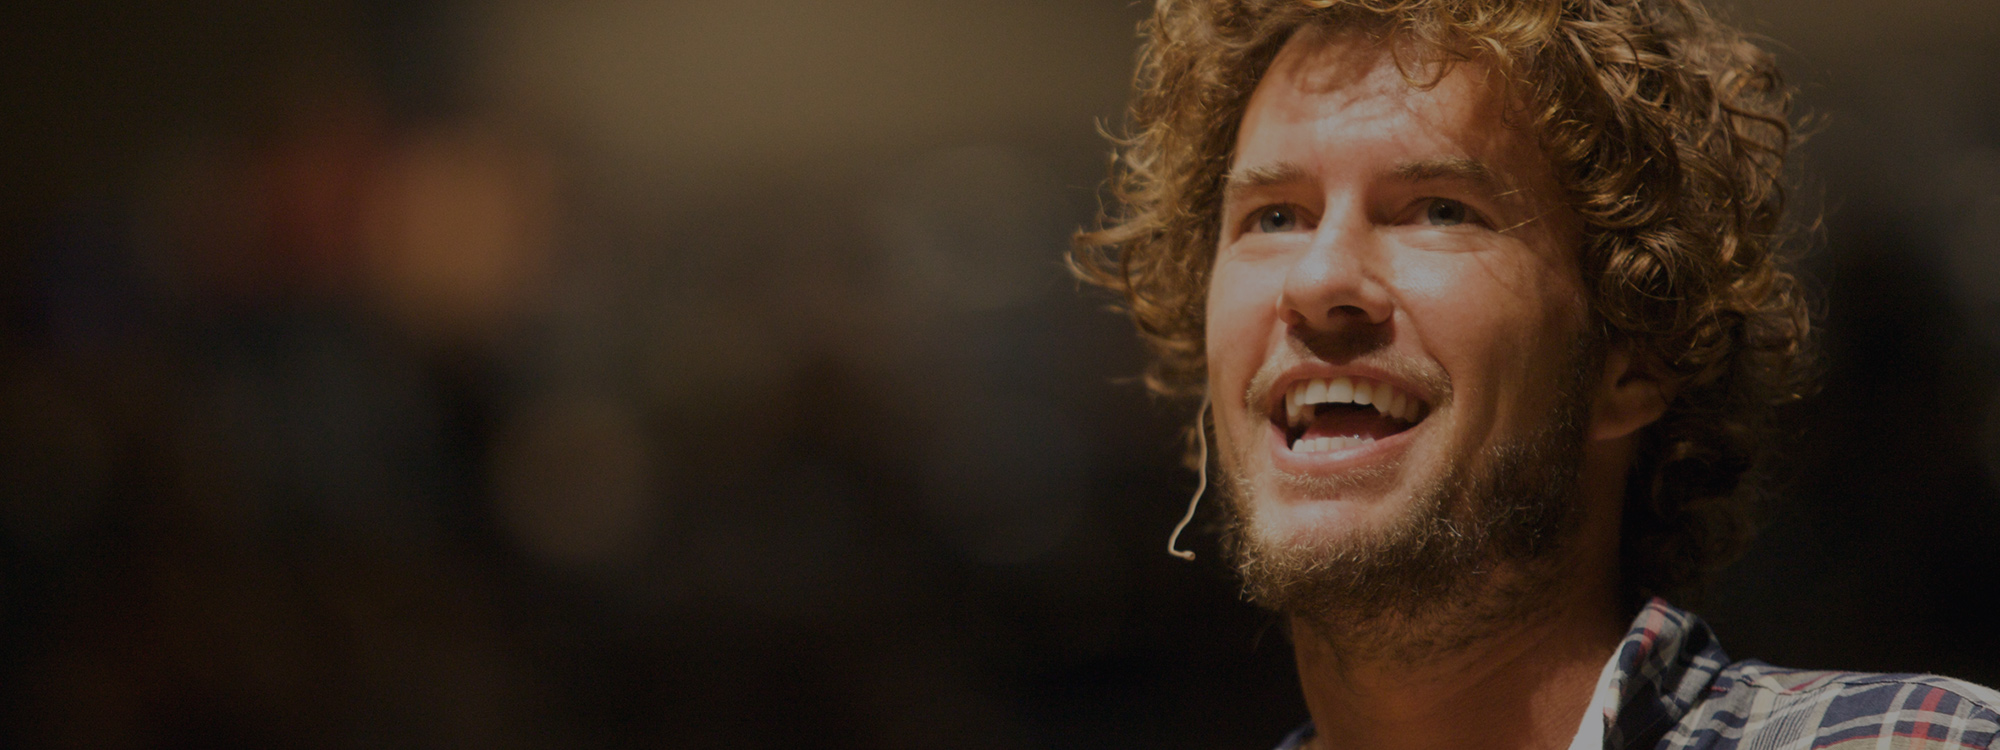 3 Success Tips From TOM's Founder, Blake Mycoskie